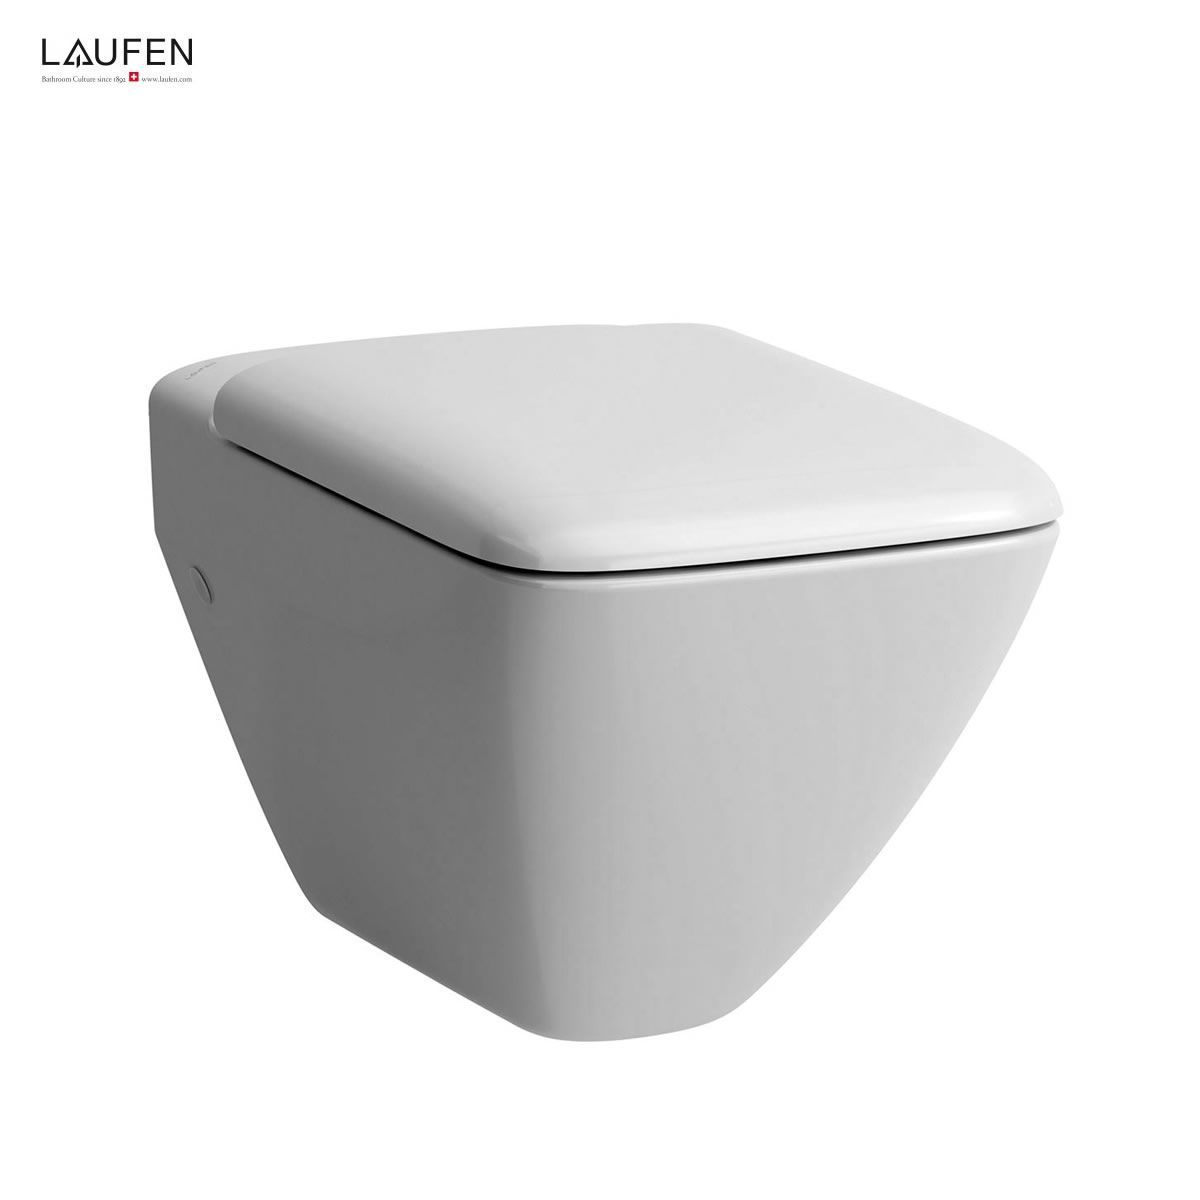 black square toilet seat.  Laufen Palace Wall Hung Toilet UK Bathrooms